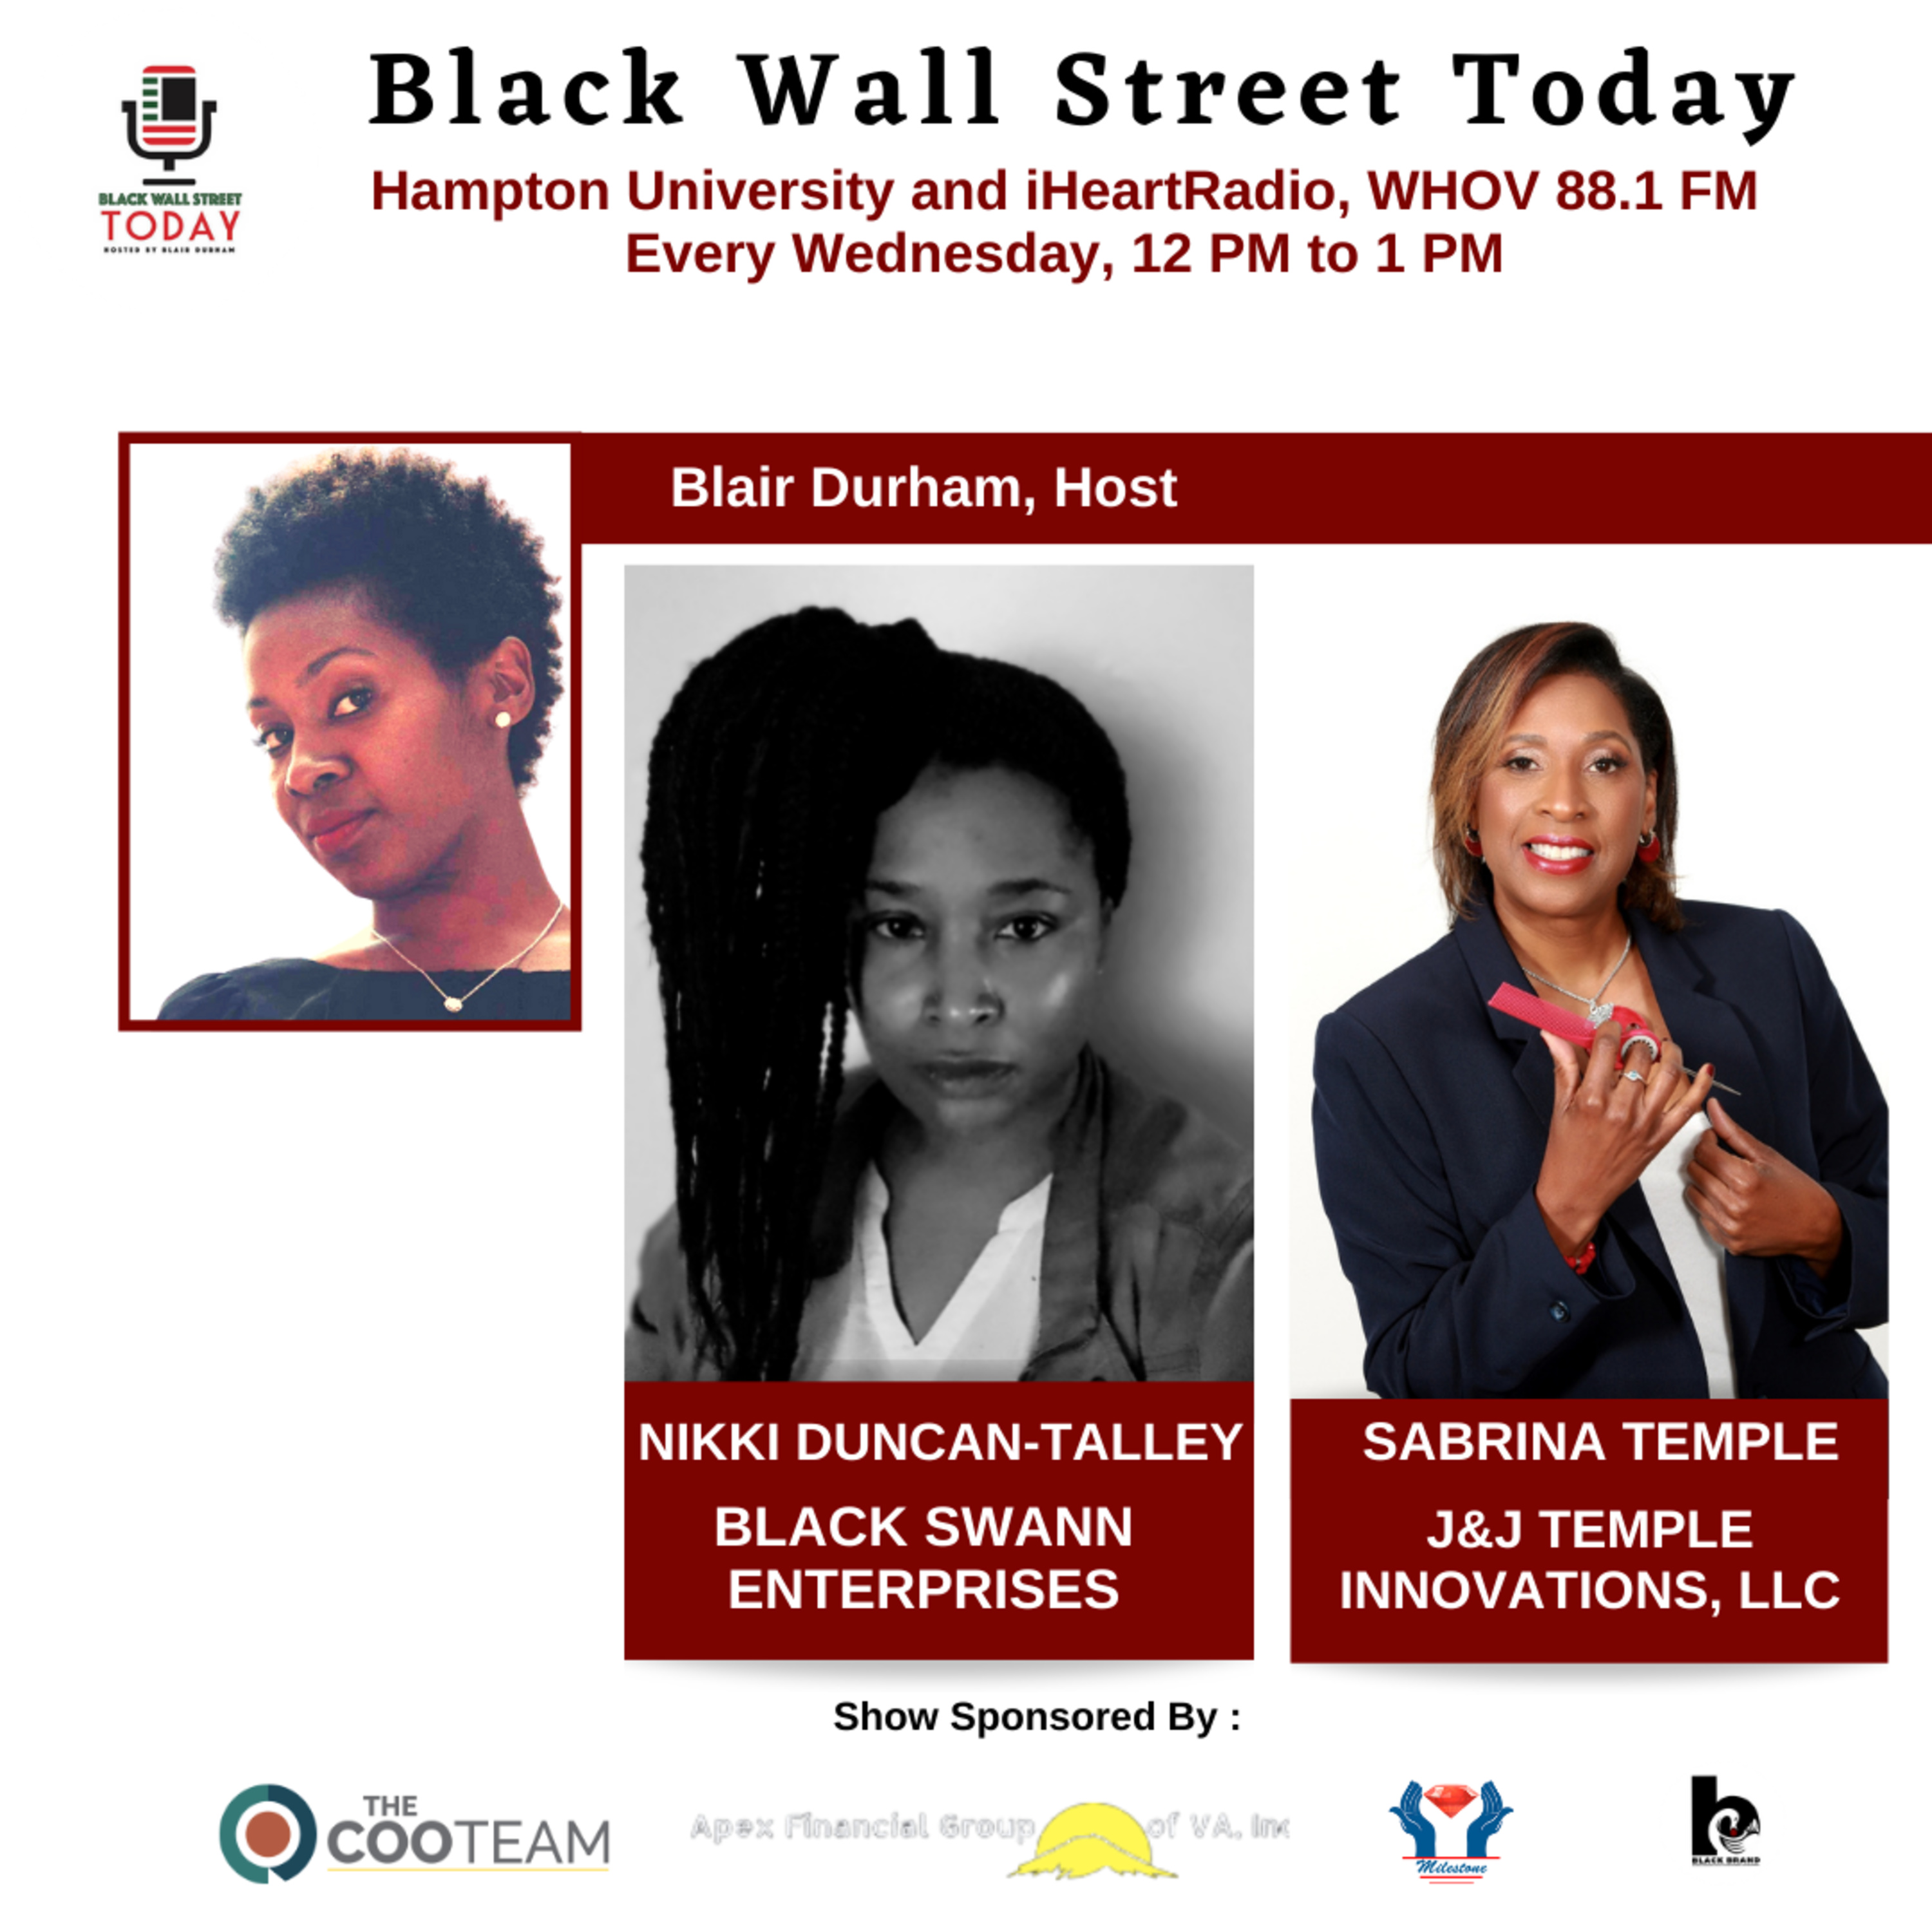 Embracing Pain Points! Black Swann Enterprises and J&J Temple Innovations on #BlackWallStreetToday with Blair Durham